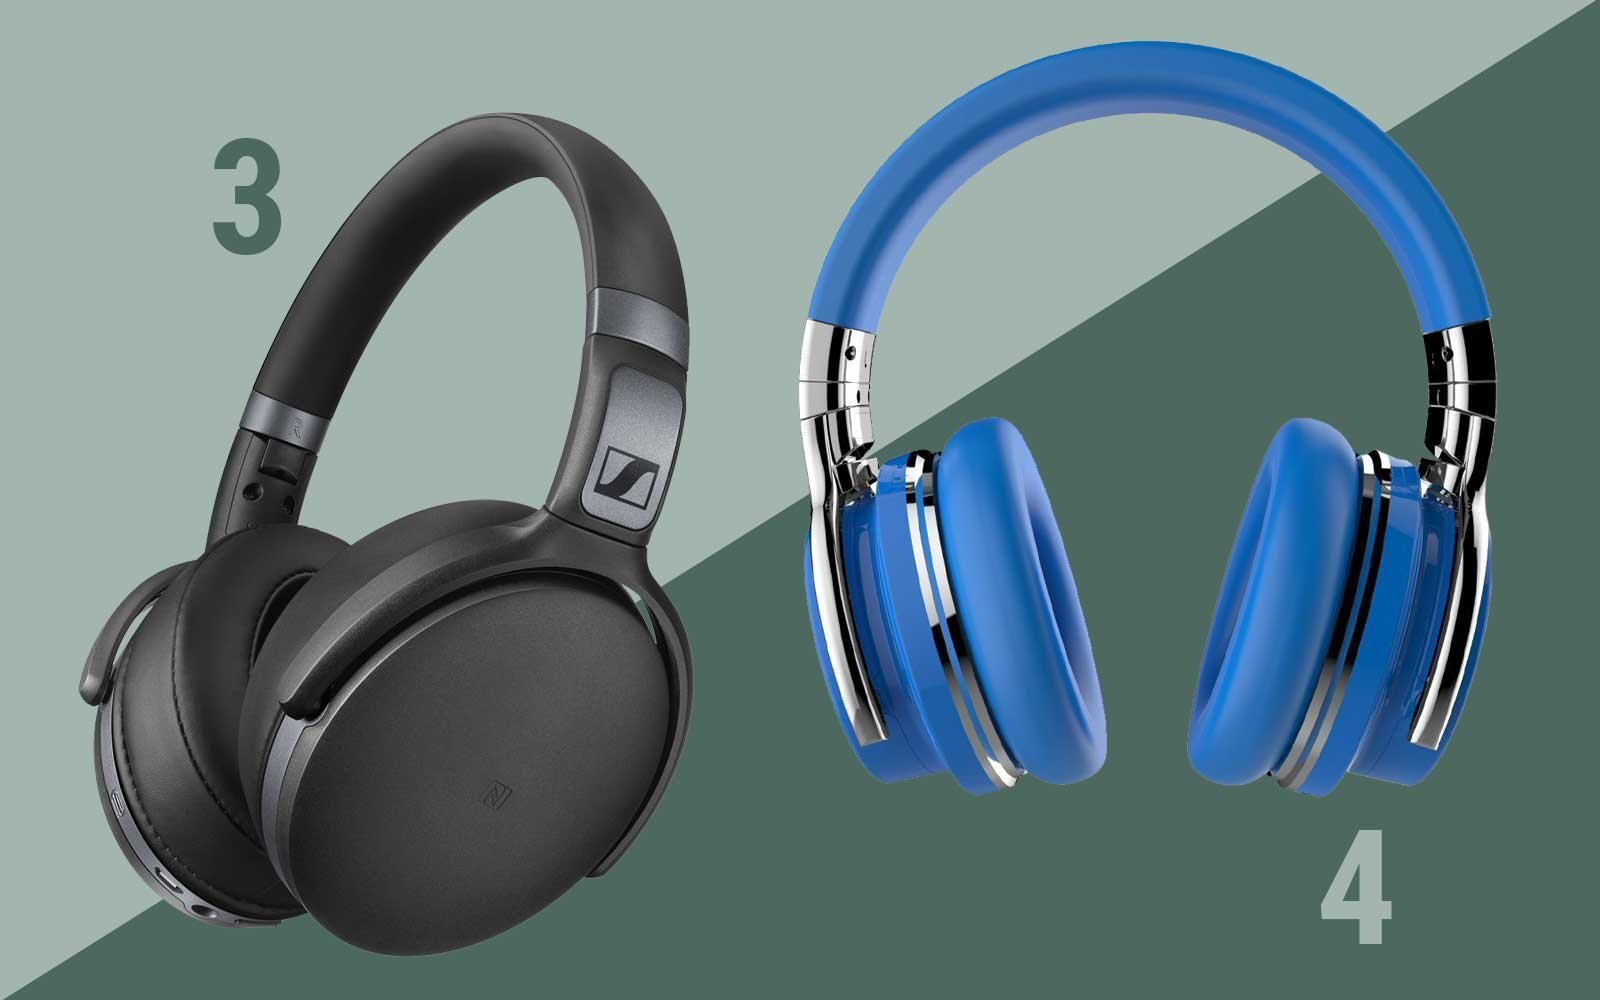 Best wireless headphones with microphone in ear budget over